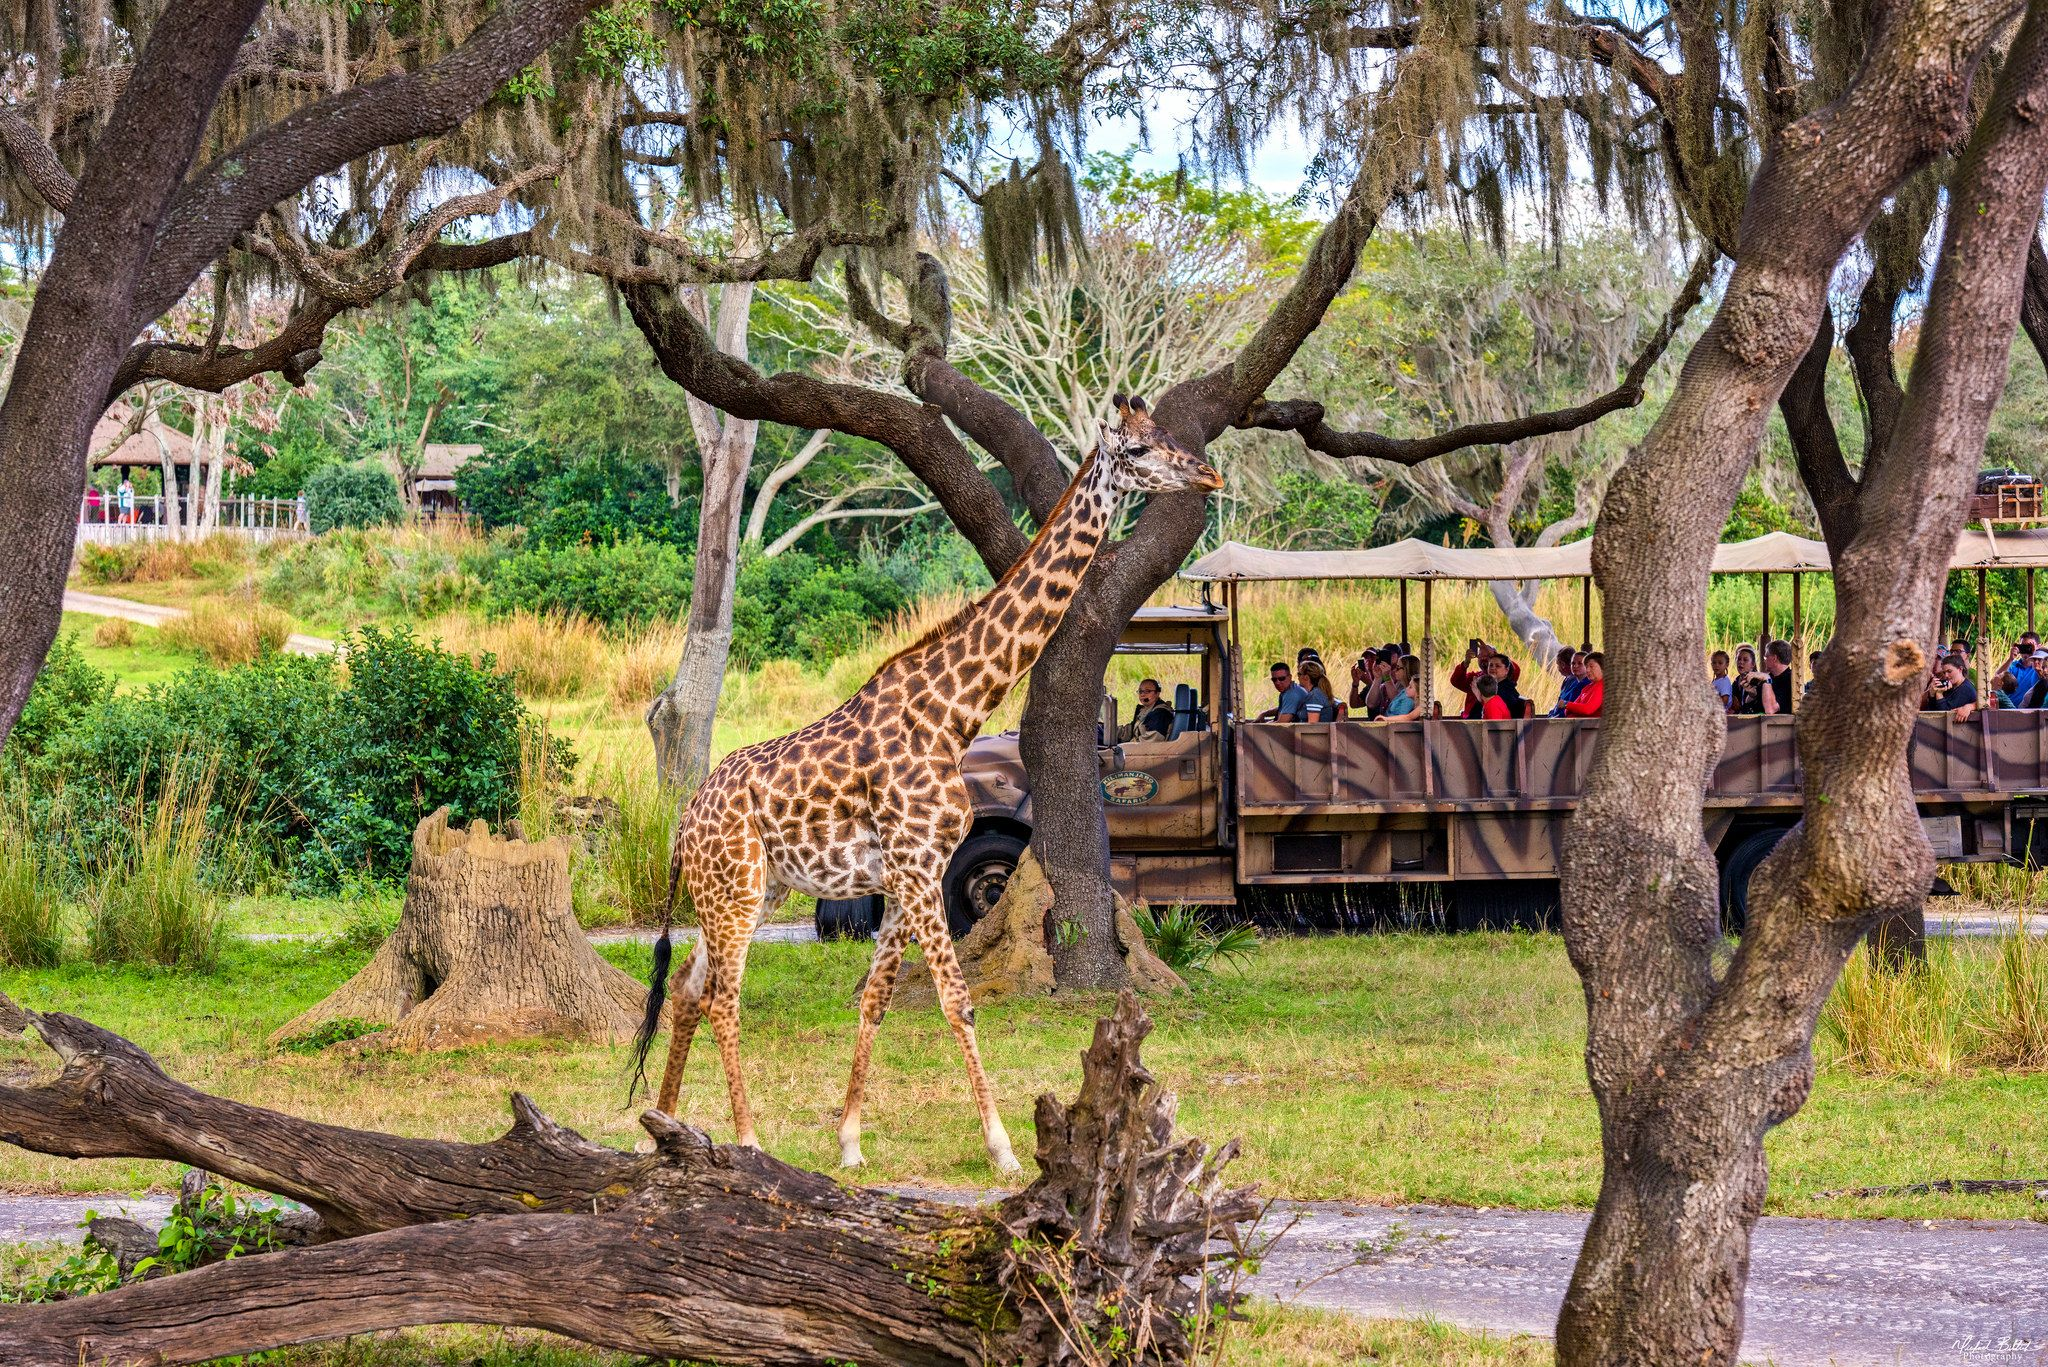 """https://flic.kr/p/KjPH9C 